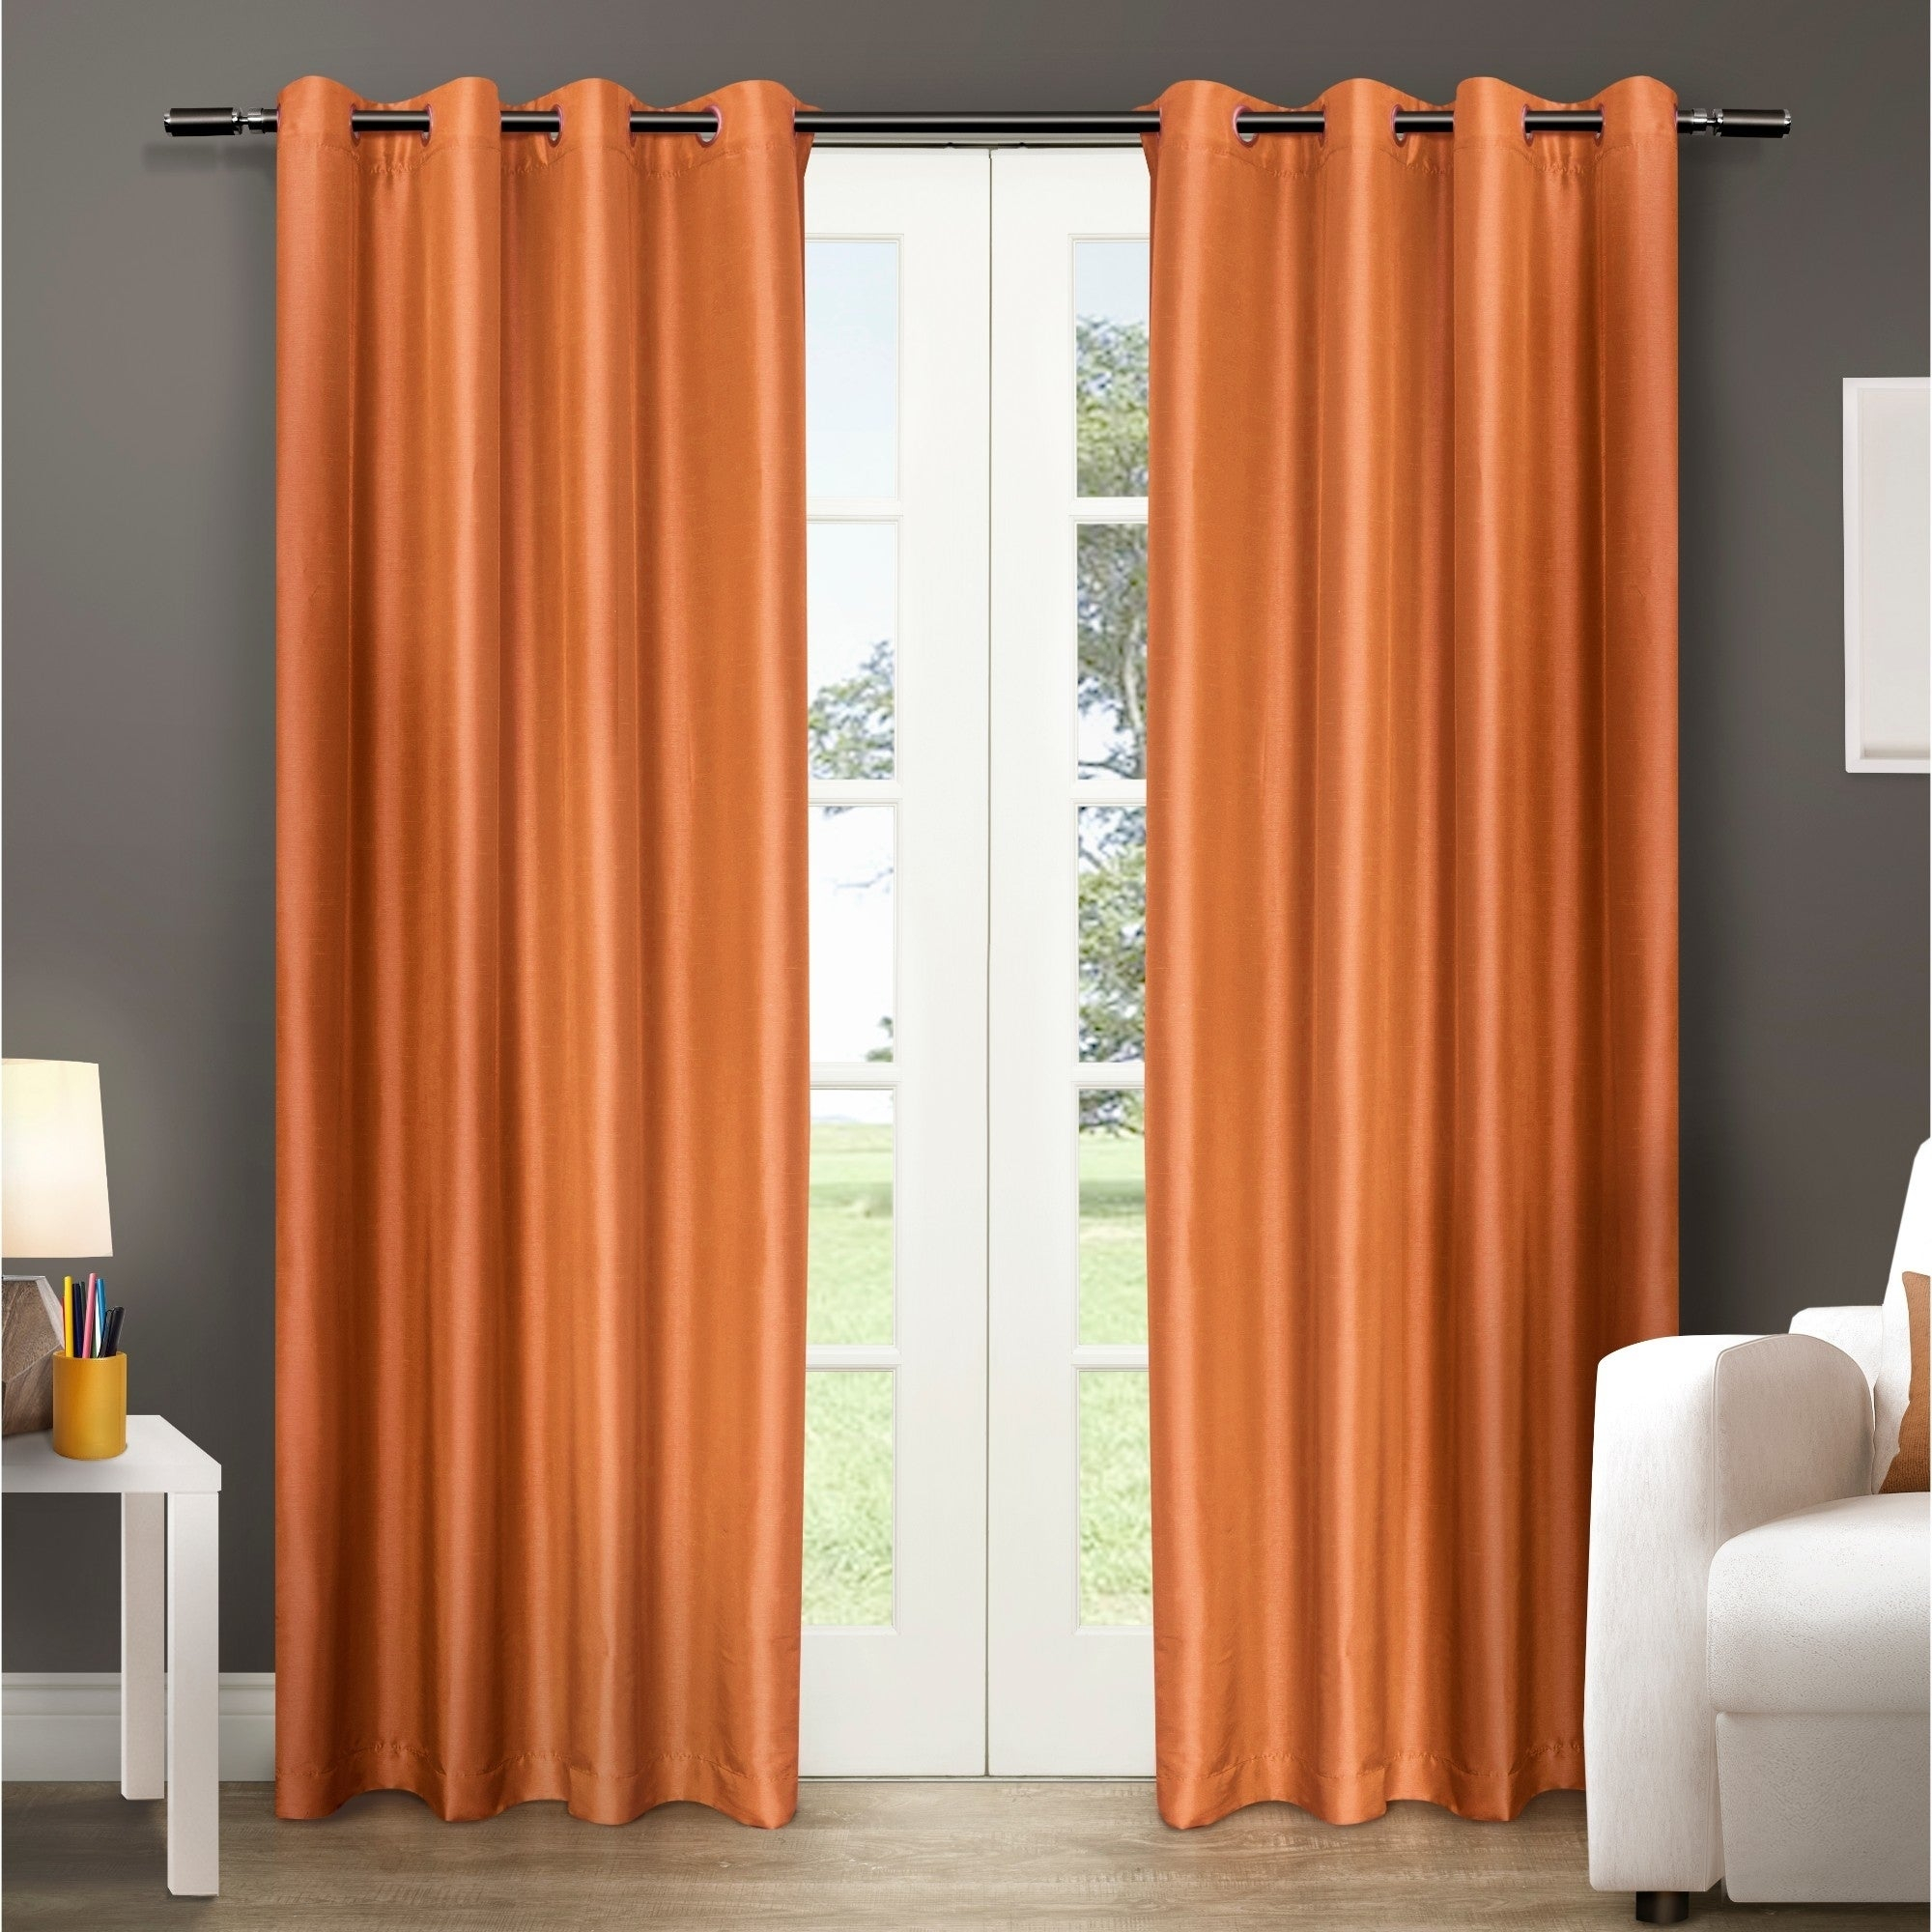 Copper Grove Fulgence Faux Silk Grommet Top Panel Curtains – N/ A With Copper Grove Fulgence Faux Silk Grommet Top Panel Curtains (View 12 of 20)